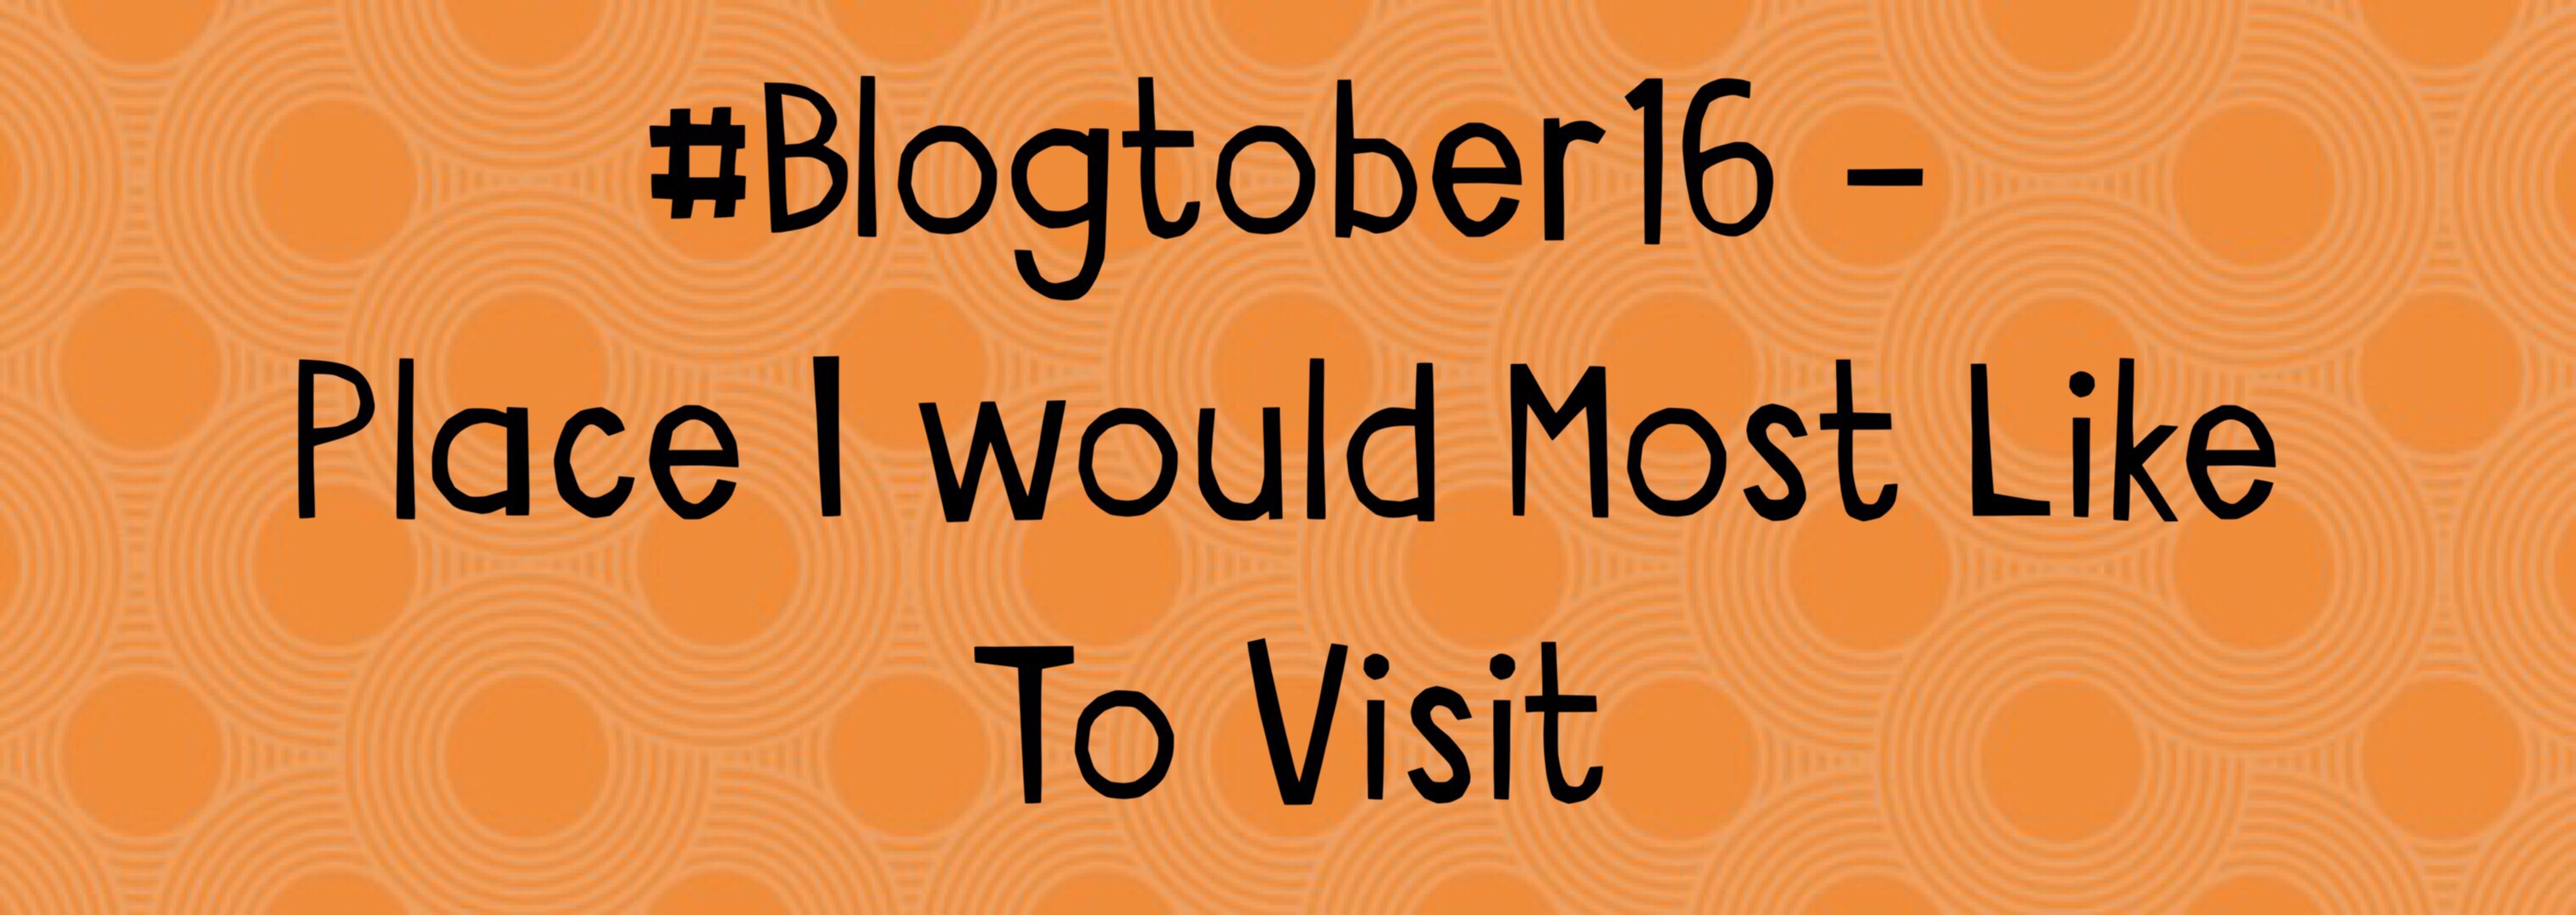 Place I would Most Like to Visit – #Blogtober16 Day 27